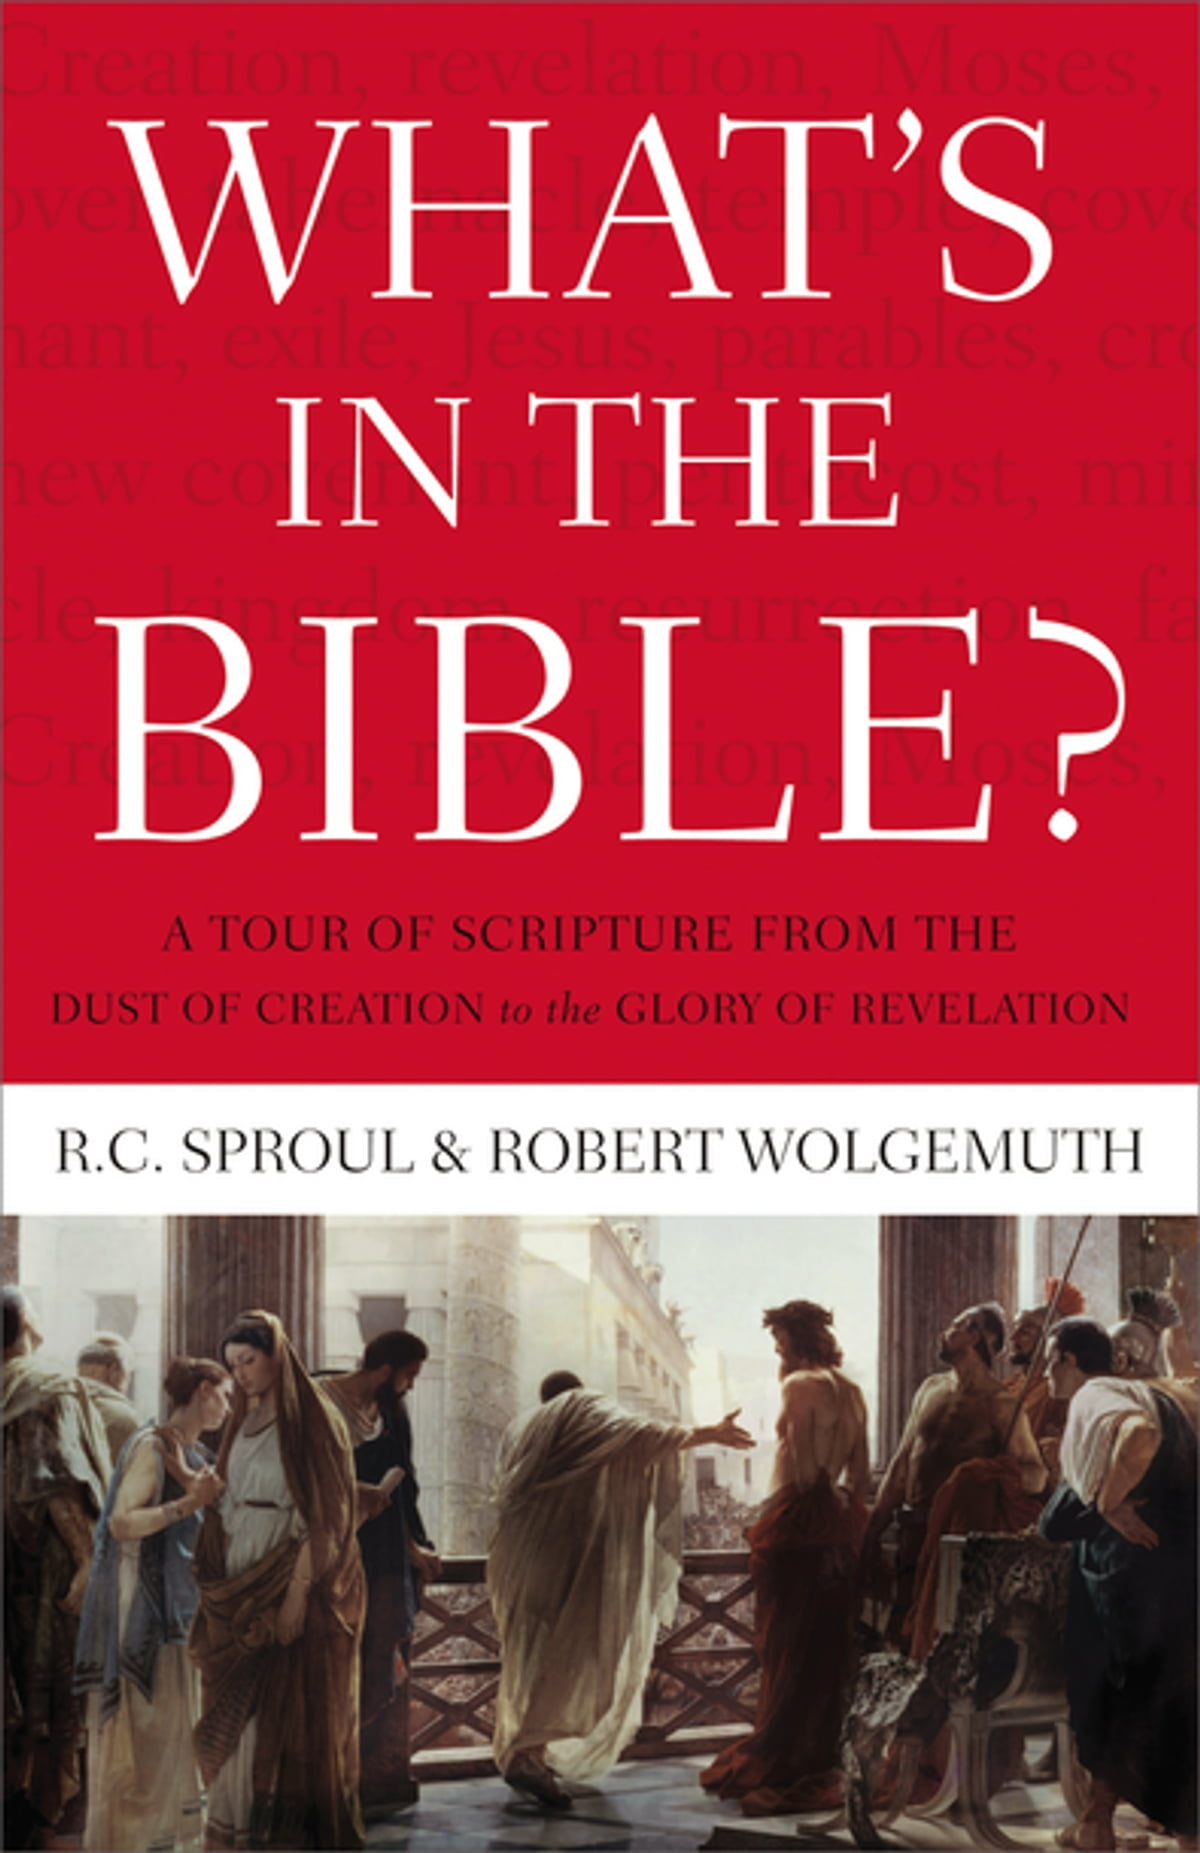 Whats in the bible ebook by rc sproul 9781418584559 rakuten whats in the bible ebook by rc sproul 9781418584559 rakuten kobo fandeluxe Document